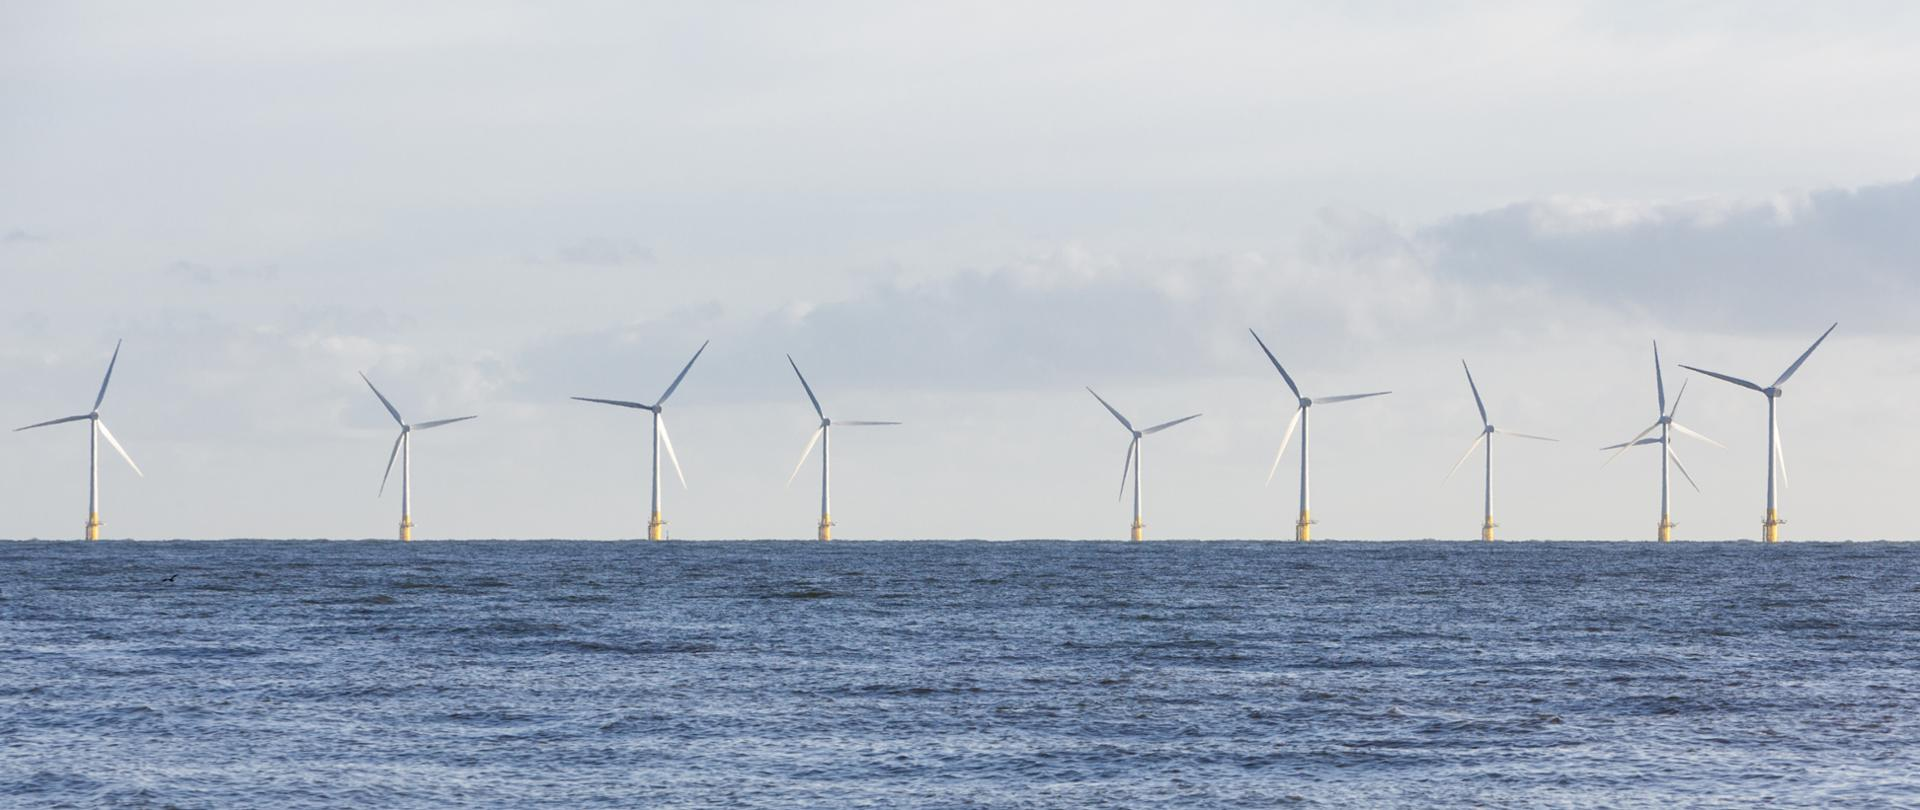 Panoramic view of wind turbines at Scroby Sands in Norfolk, UK